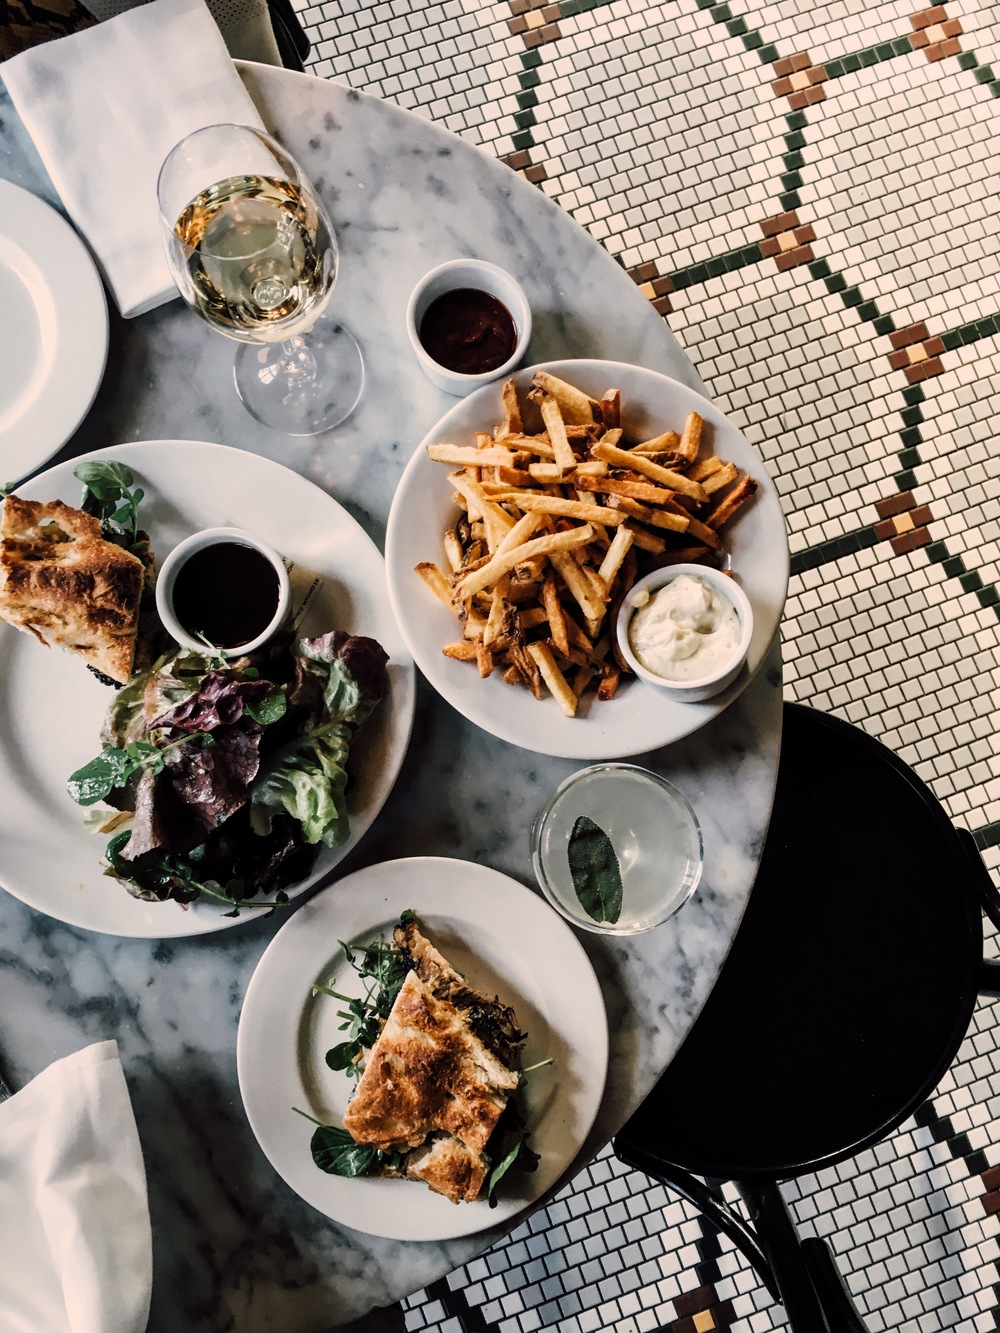 wythe_hotel_lunch.jpg